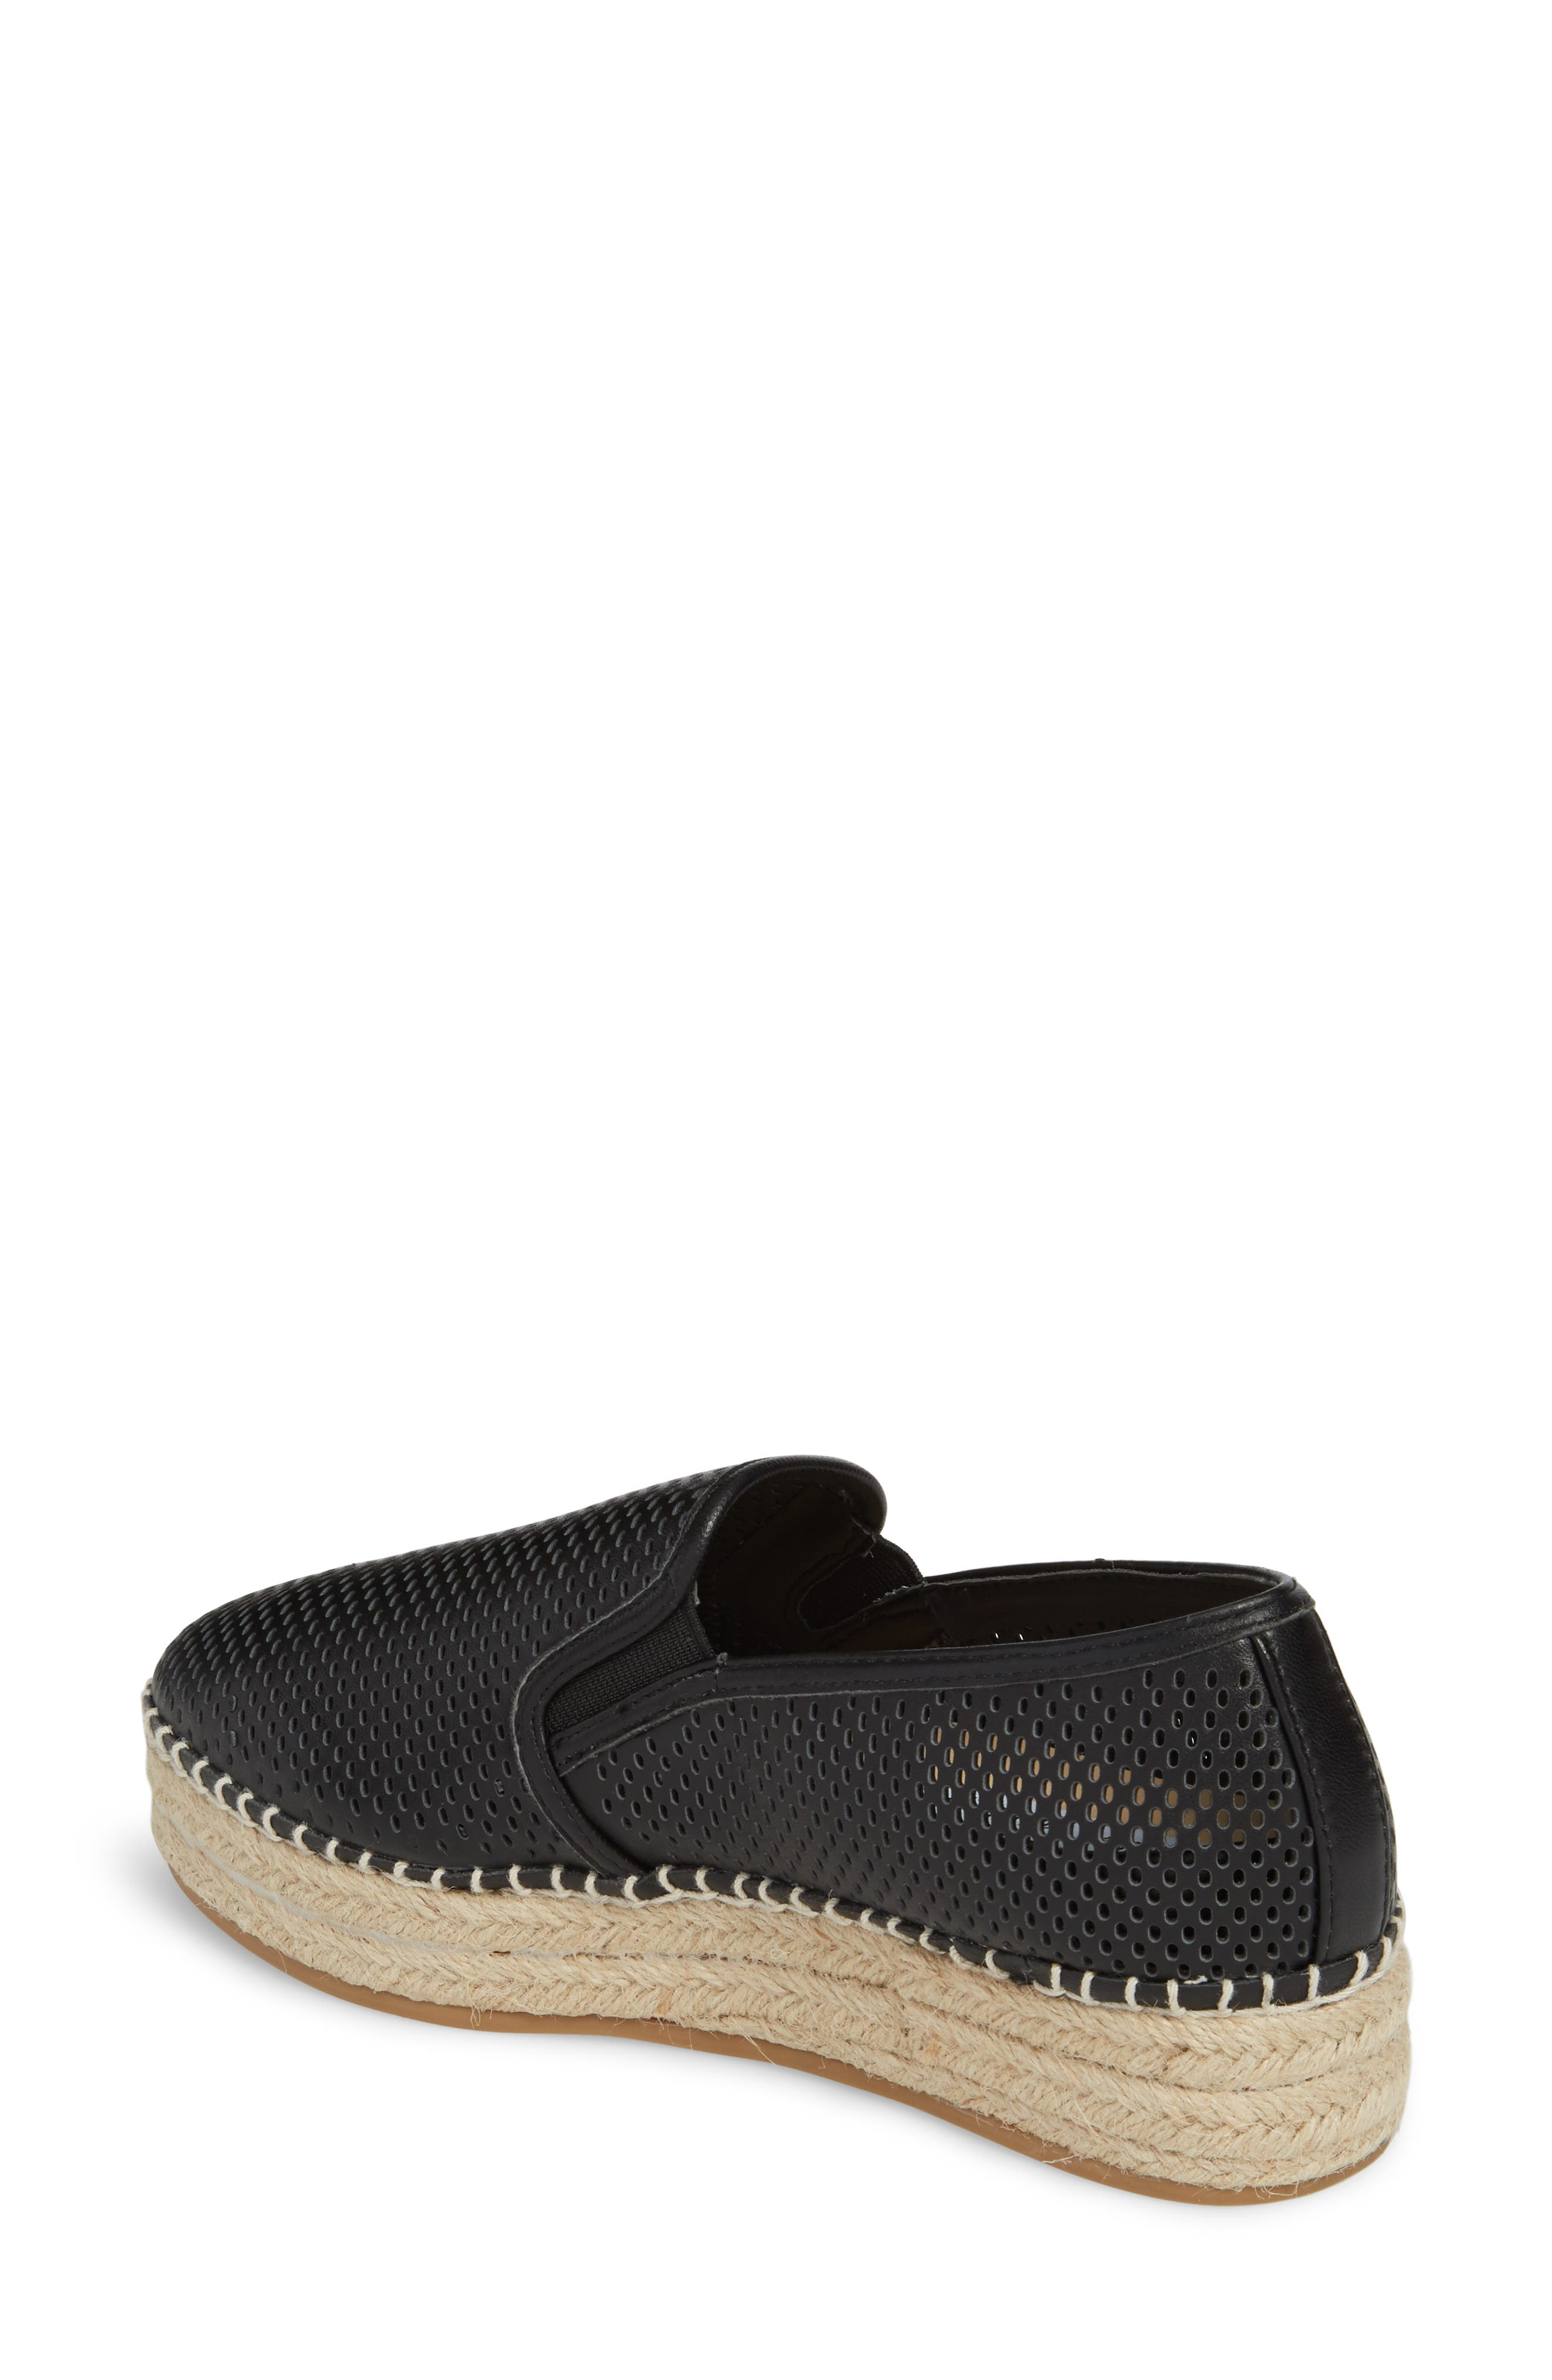 Wright Perforated Platform Espadrille,                             Alternate thumbnail 2, color,                             001